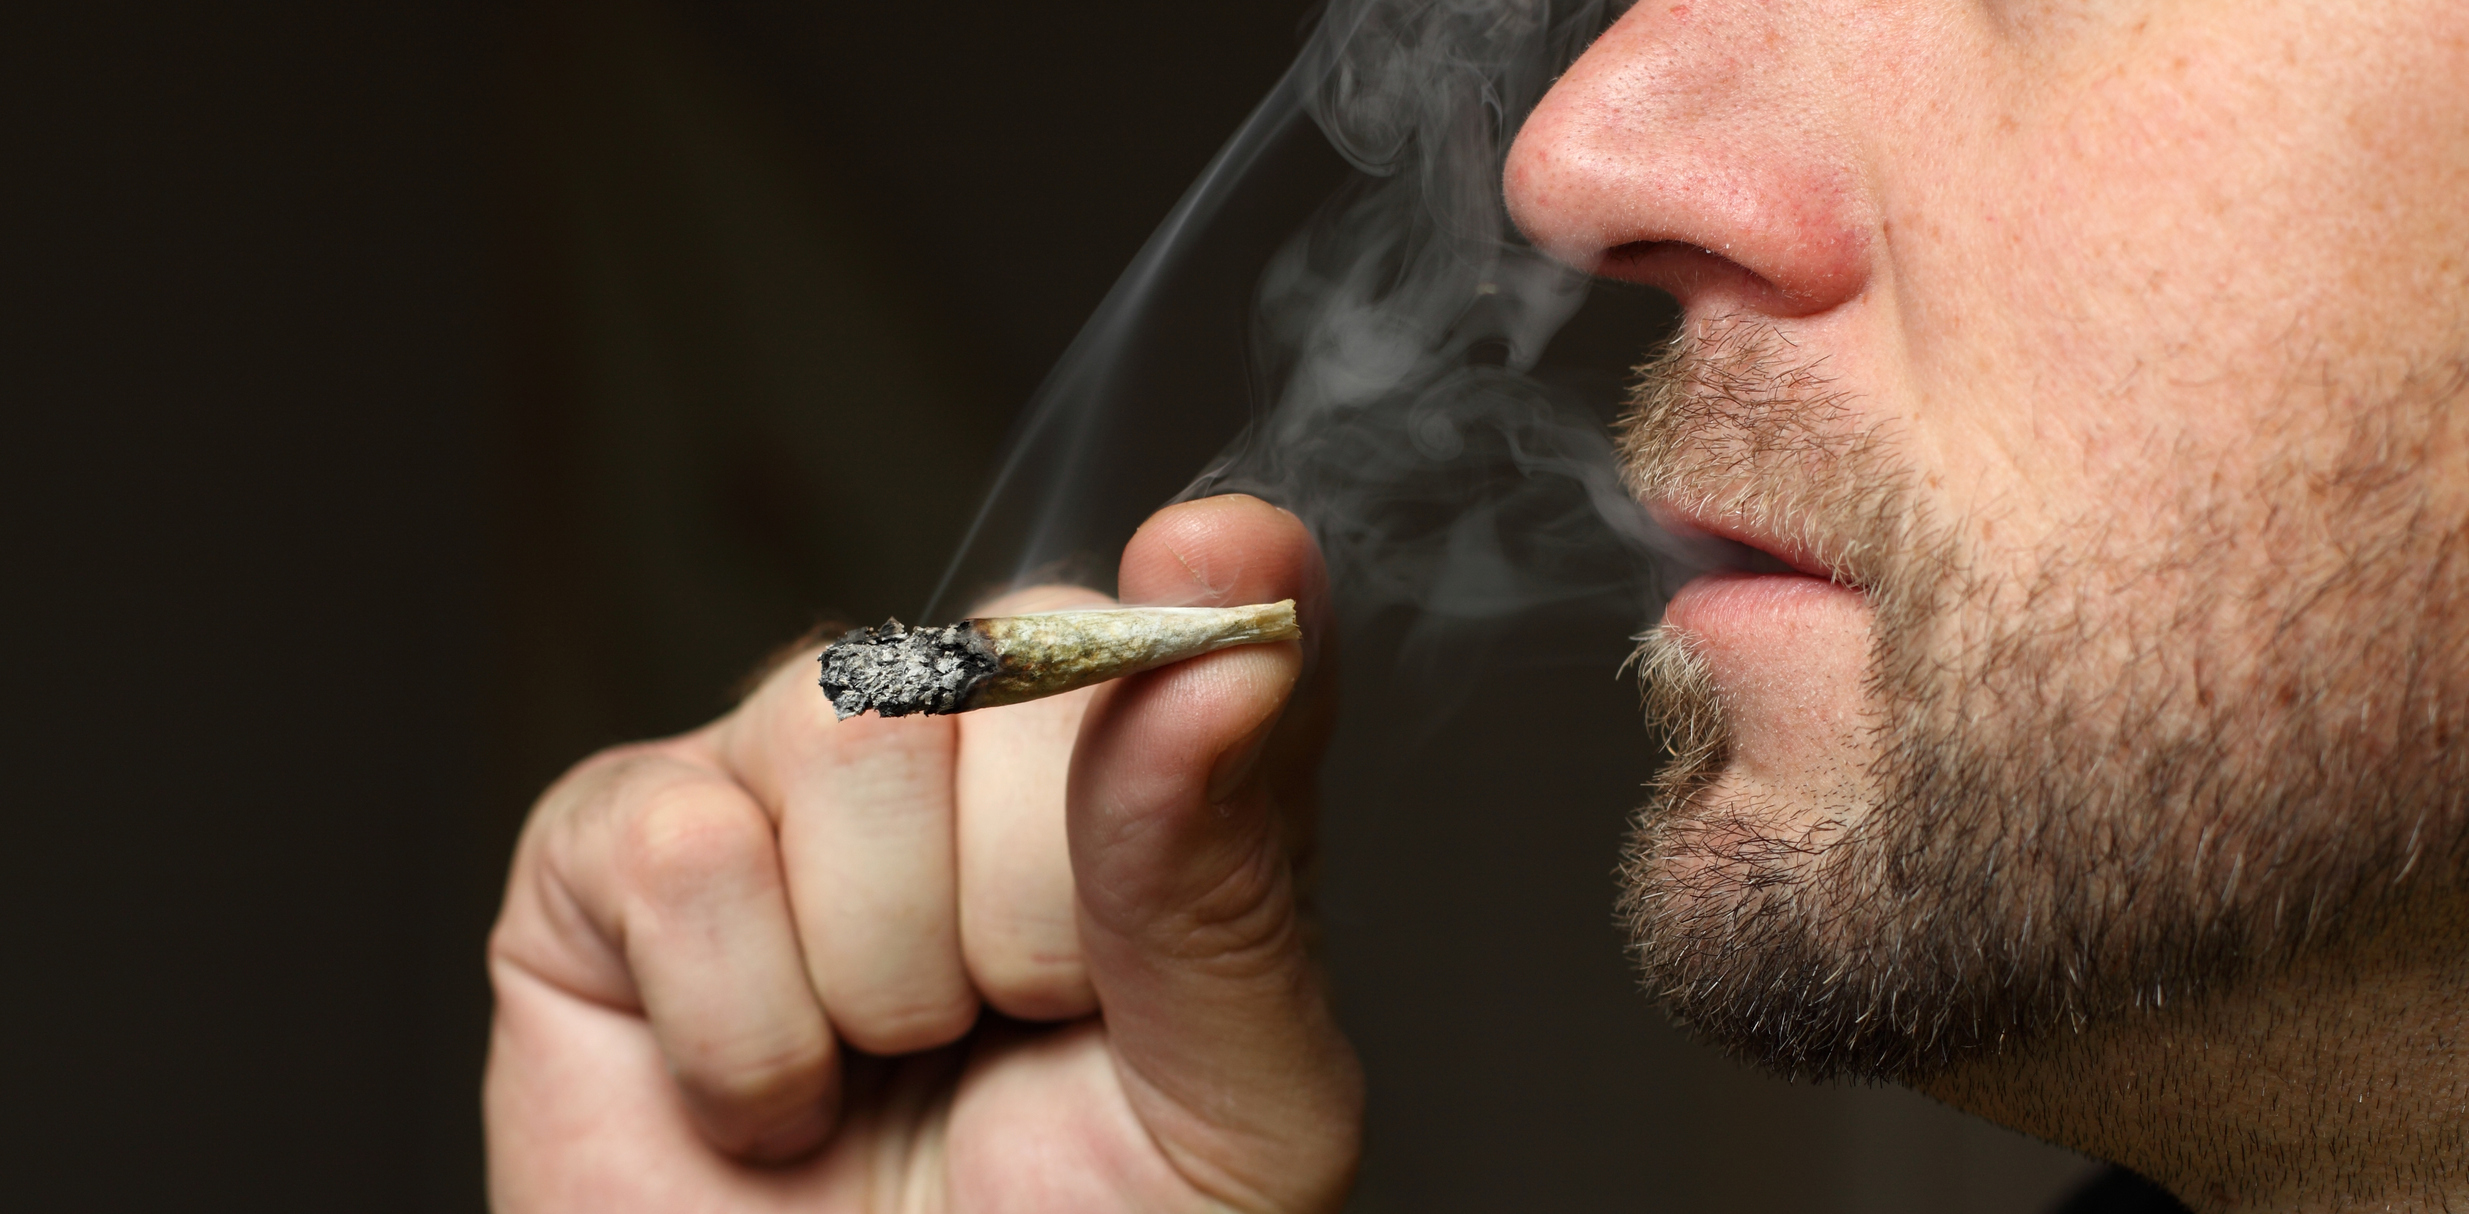 Westlake Legal Group smoking_pot_istock Philadelphia's move toward decriminalizing drug possession: smart or dangerous? fox-news/us/us-regions/northeast/pennsylvania fox-news/us/crime/police-and-law-enforcement fox-news/topic/fox-news-flash fox-news/health/mental-health/drug-and-substance-abuse fox news fnc/us fnc Elizabeth Llorente article 27a480a9-7d77-53c9-a5d0-e3aa2969282f